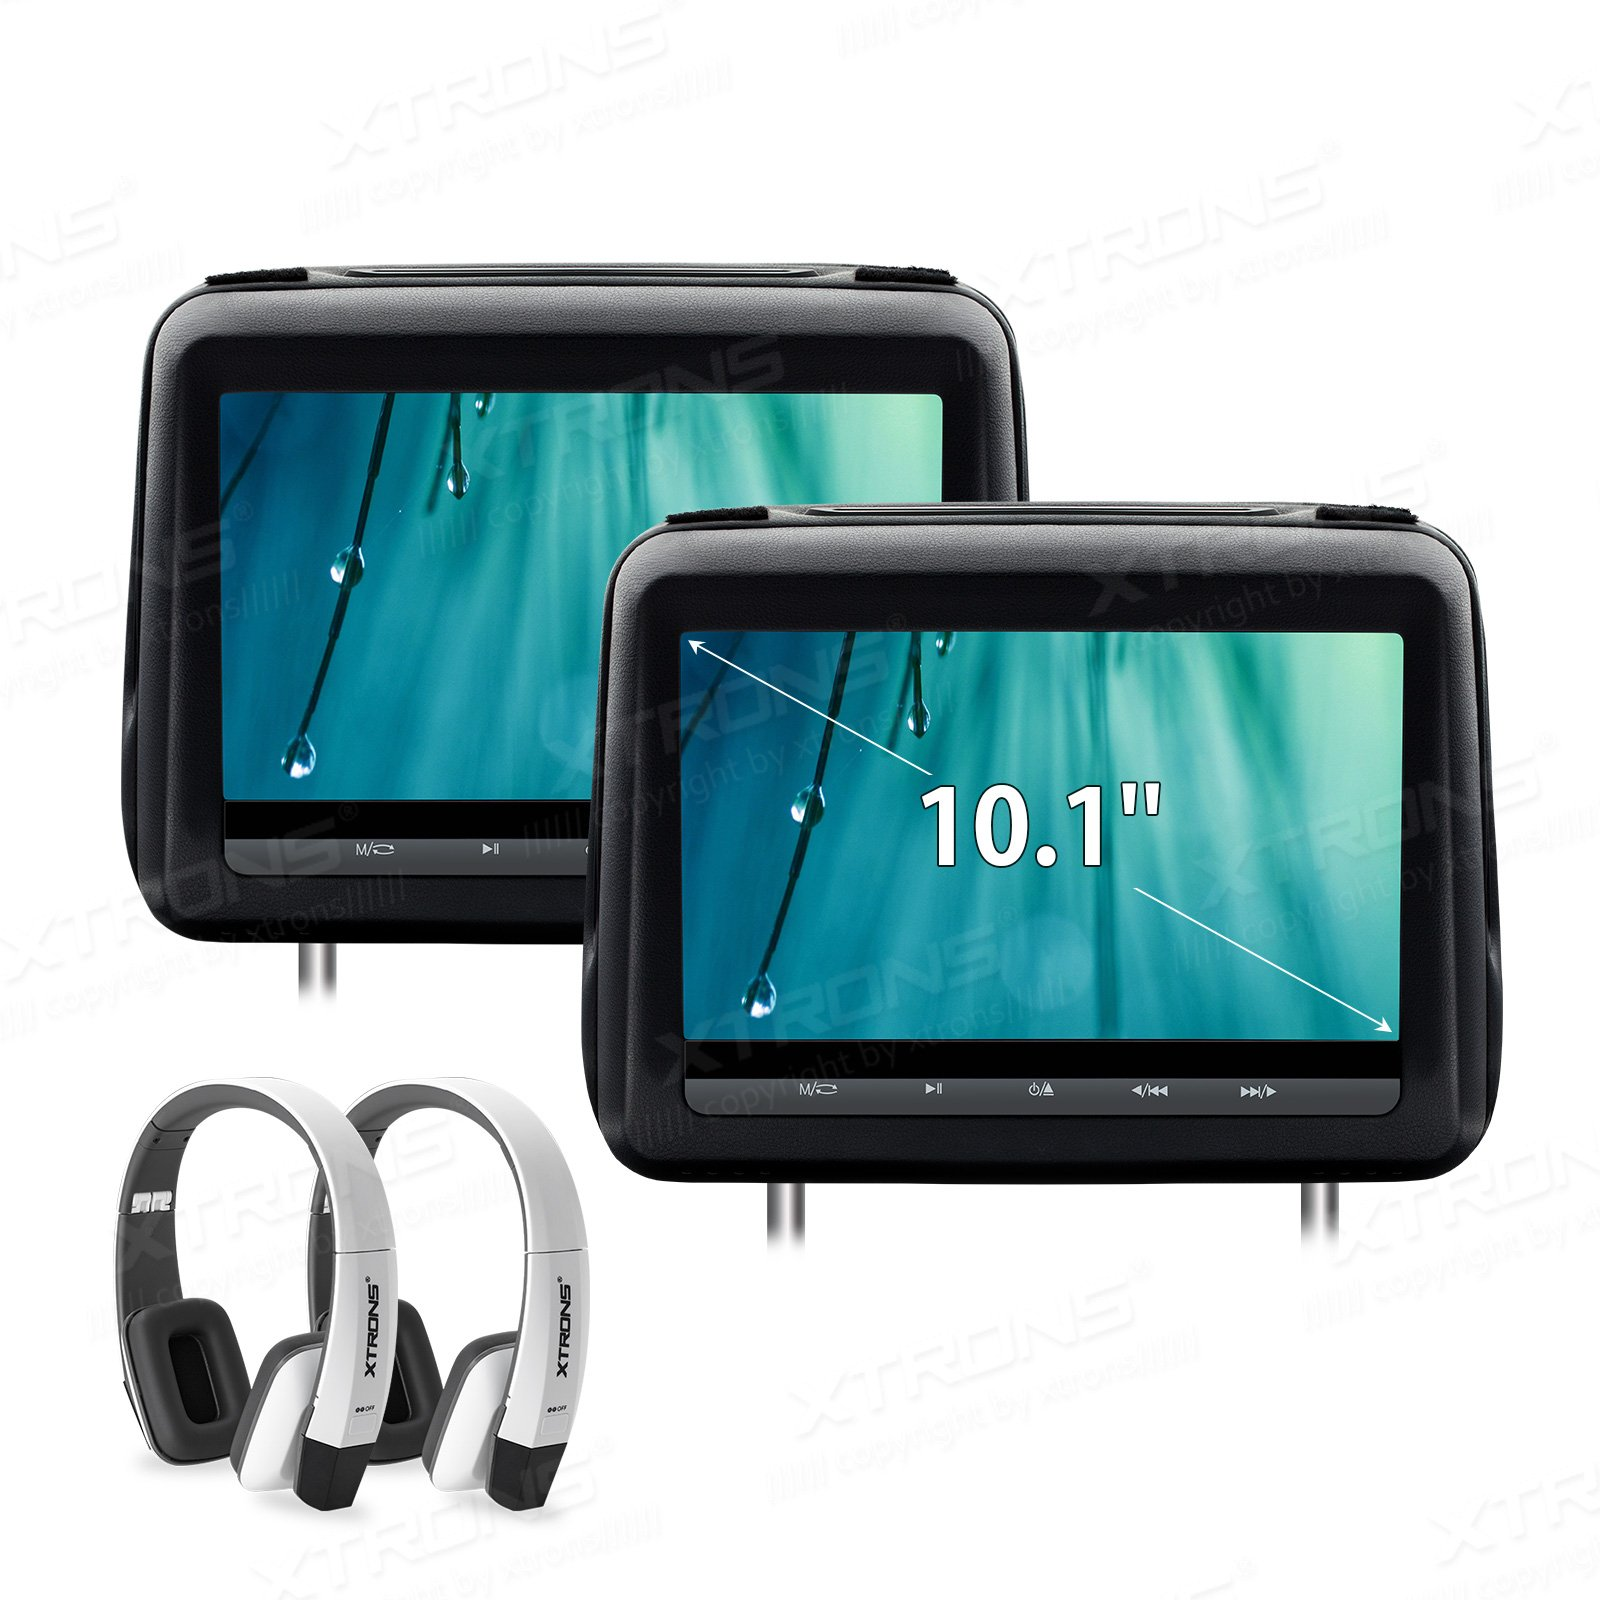 XTRONS 10.1 Inch HD Digital Screen Touch Panel Leather Cover Car Headrest DVD Player 1080P Video with HDMI Port White New Version IR Headphones Included